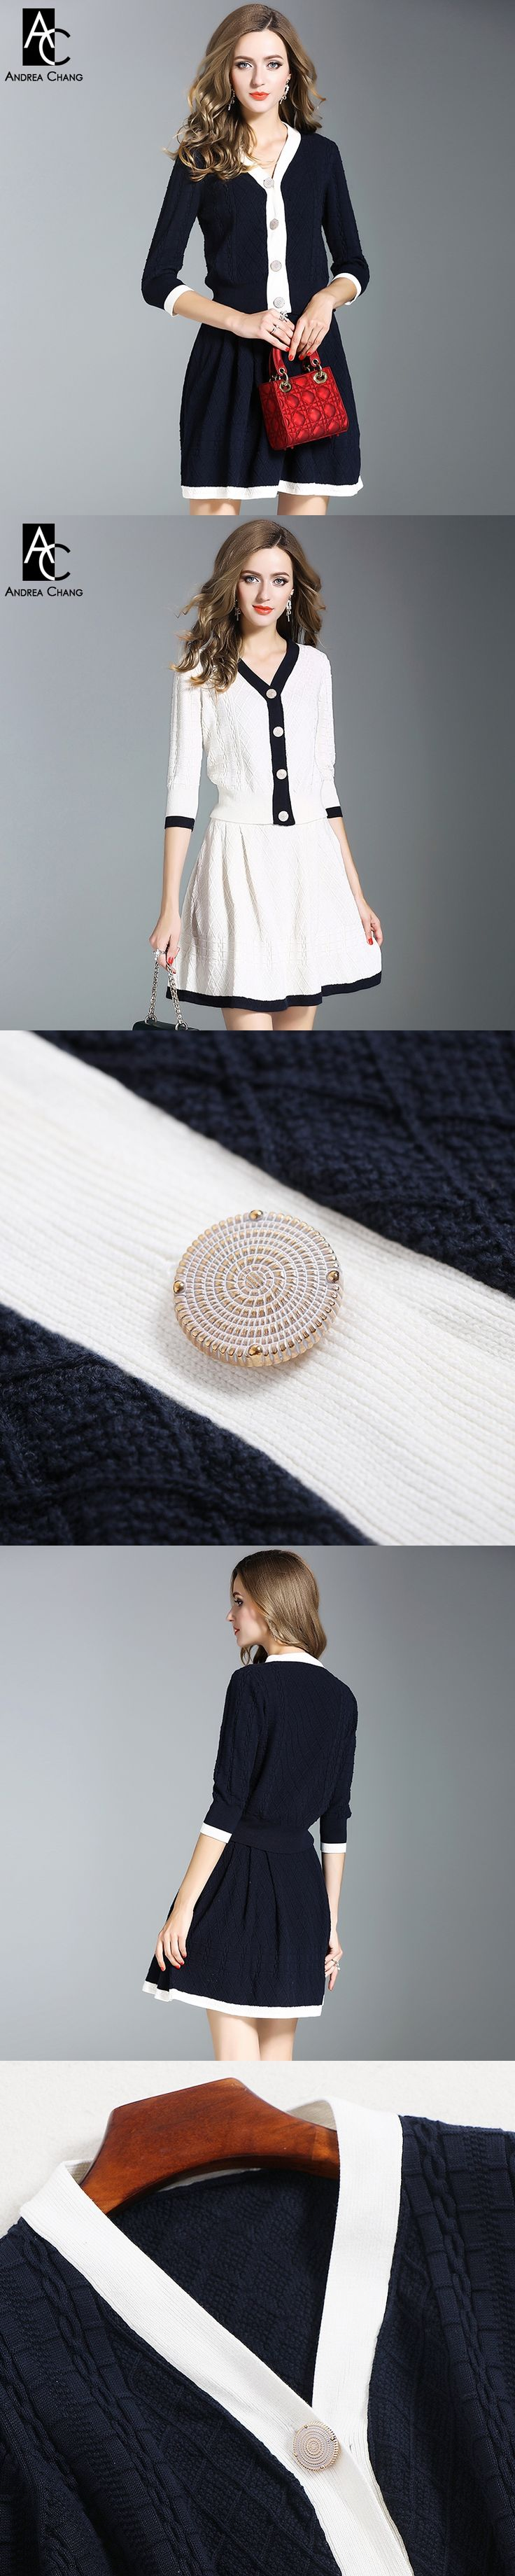 autumn winter woman outfit dark blue white knitted suit 3/4 sleeve v-neck single breasted sweater mini skirt cotton outfit suit